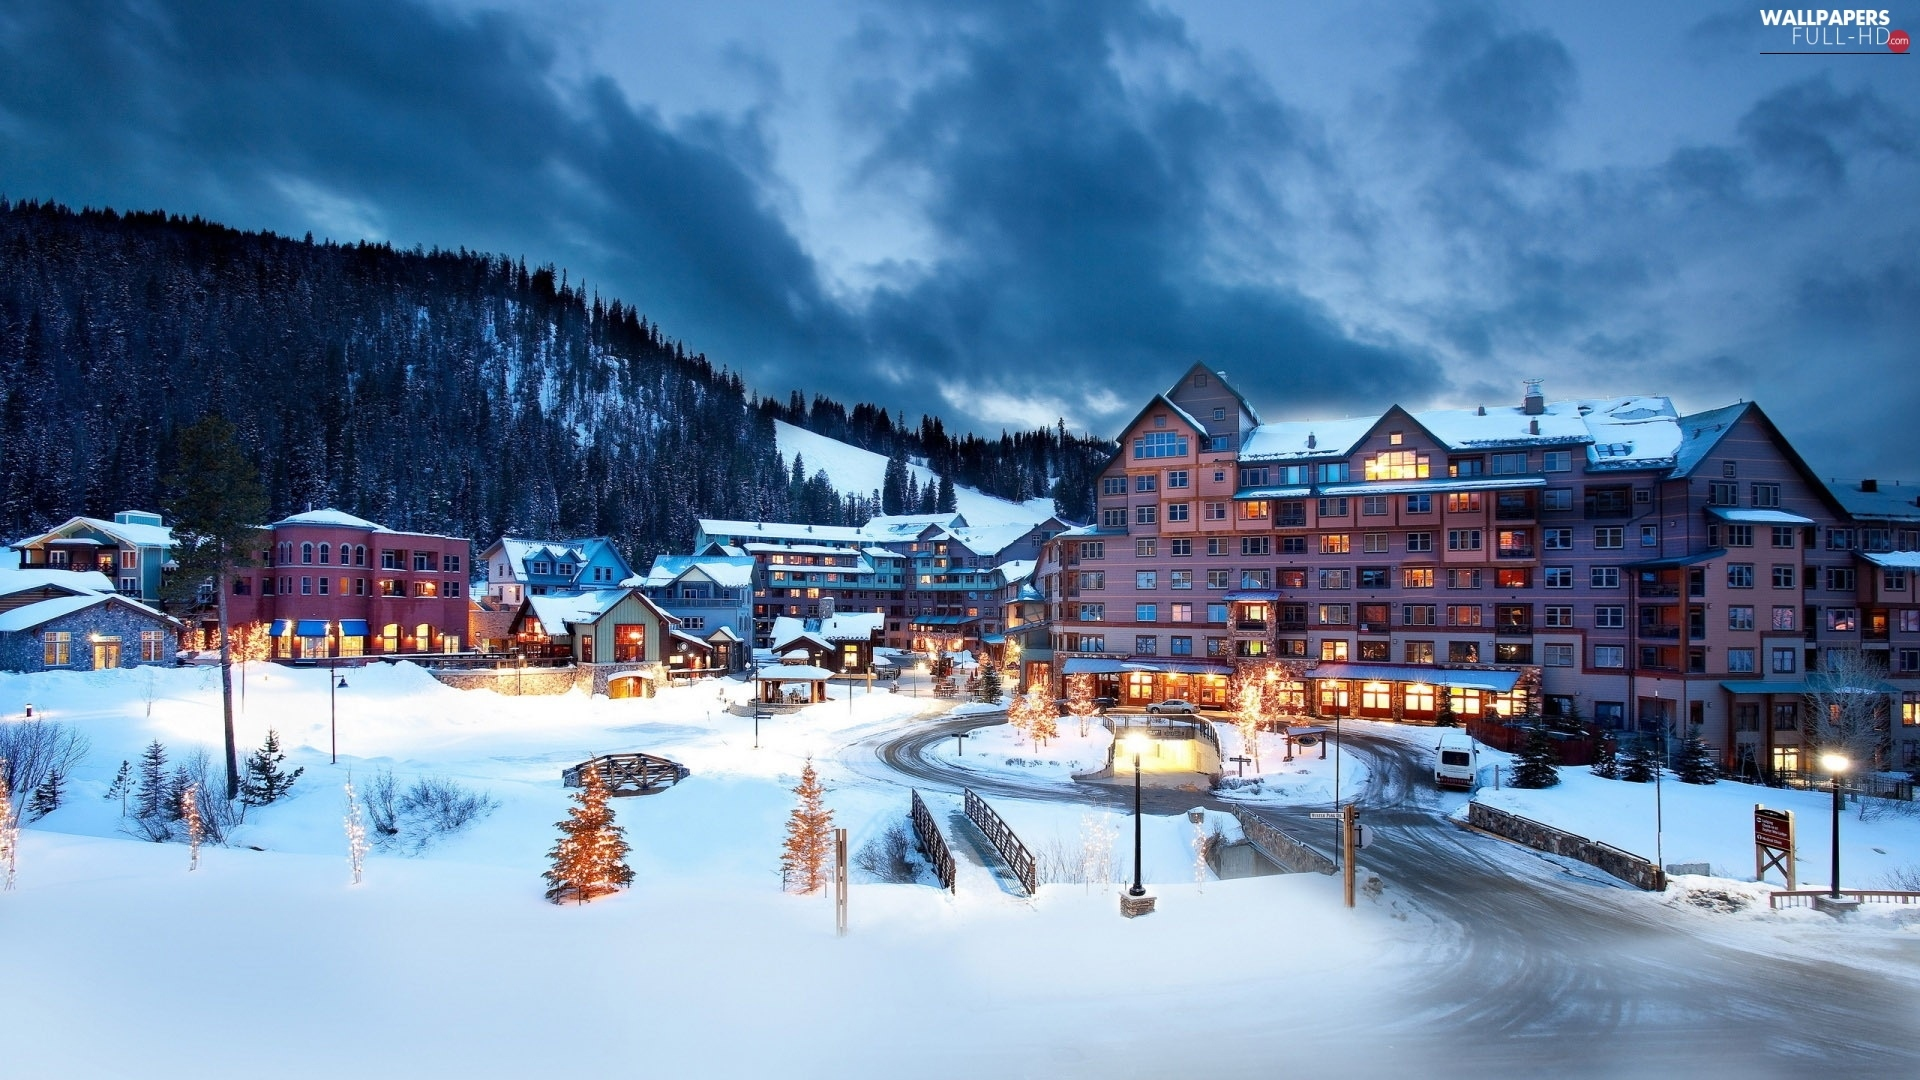 Hotels, Colorado, center, The United States, winter